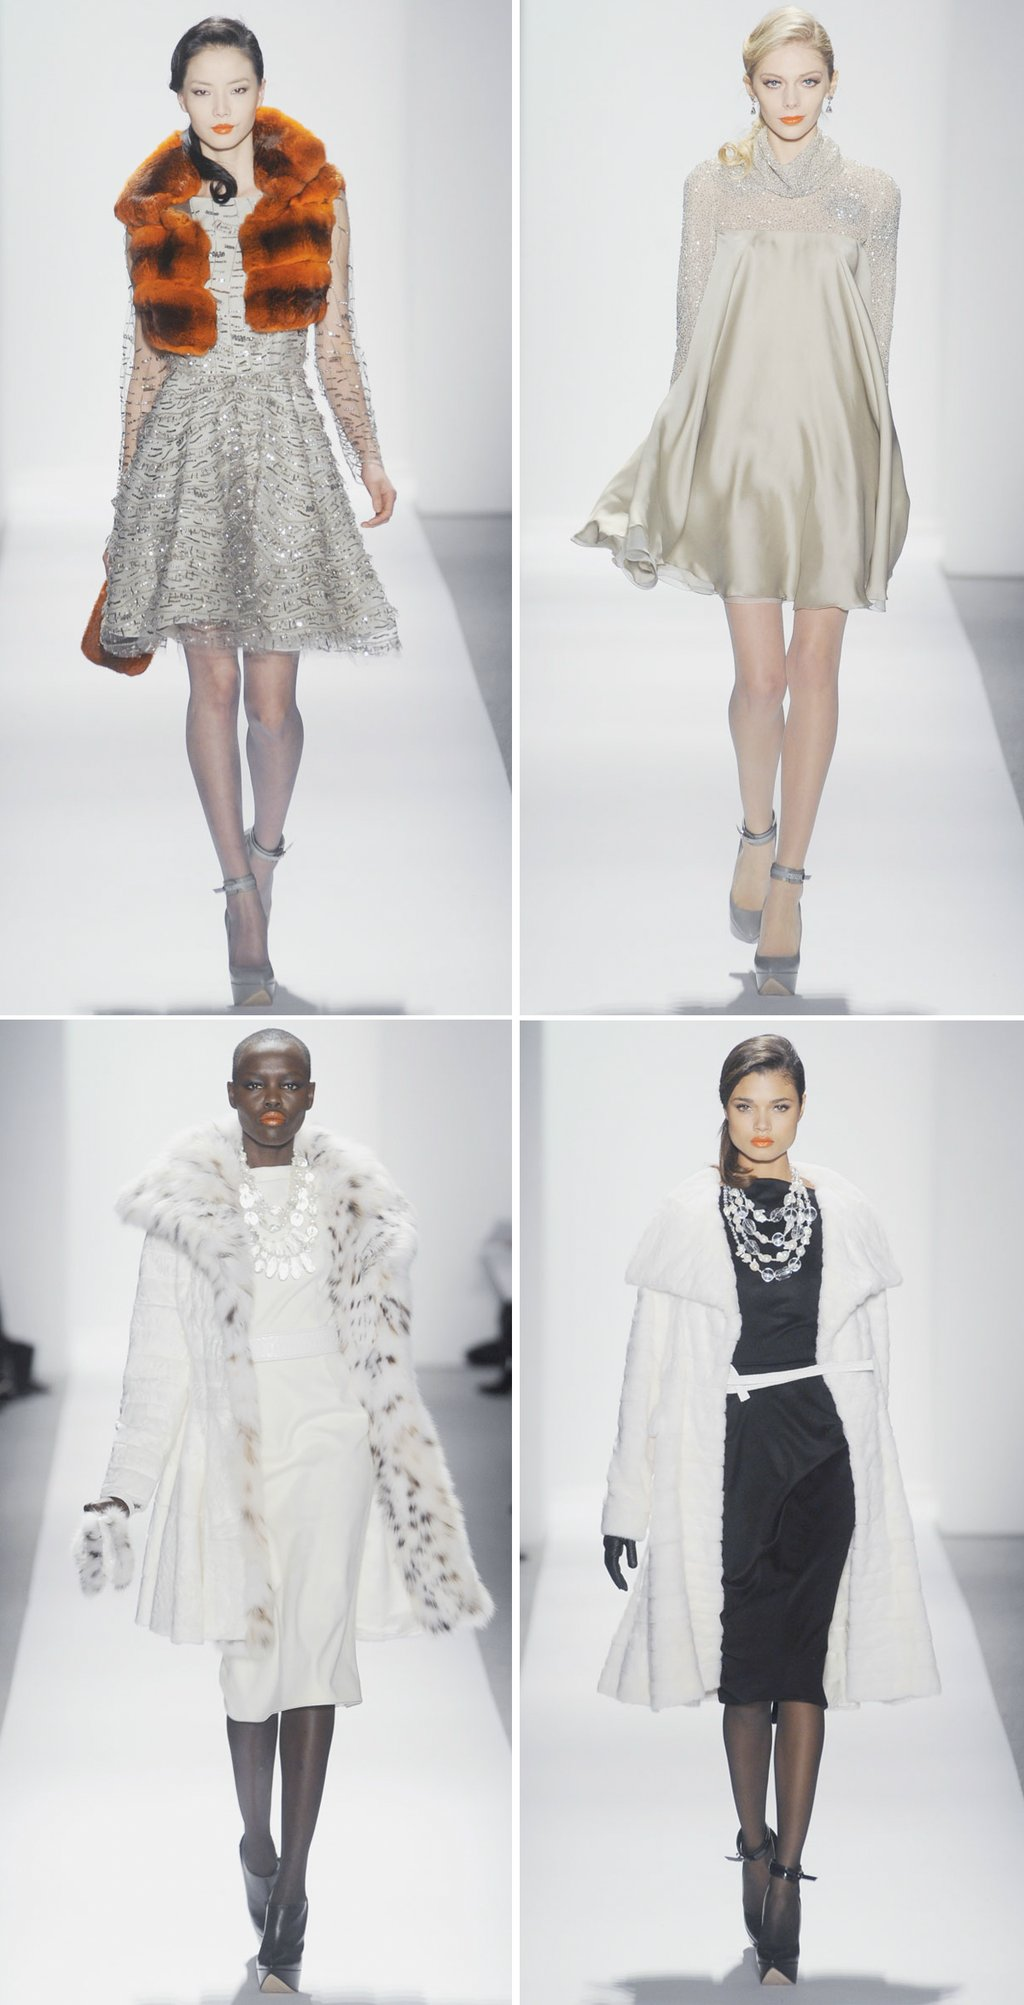 Winter-wedding-coats-little-white-dresses-for-wedding-reception-dennis-basso.full